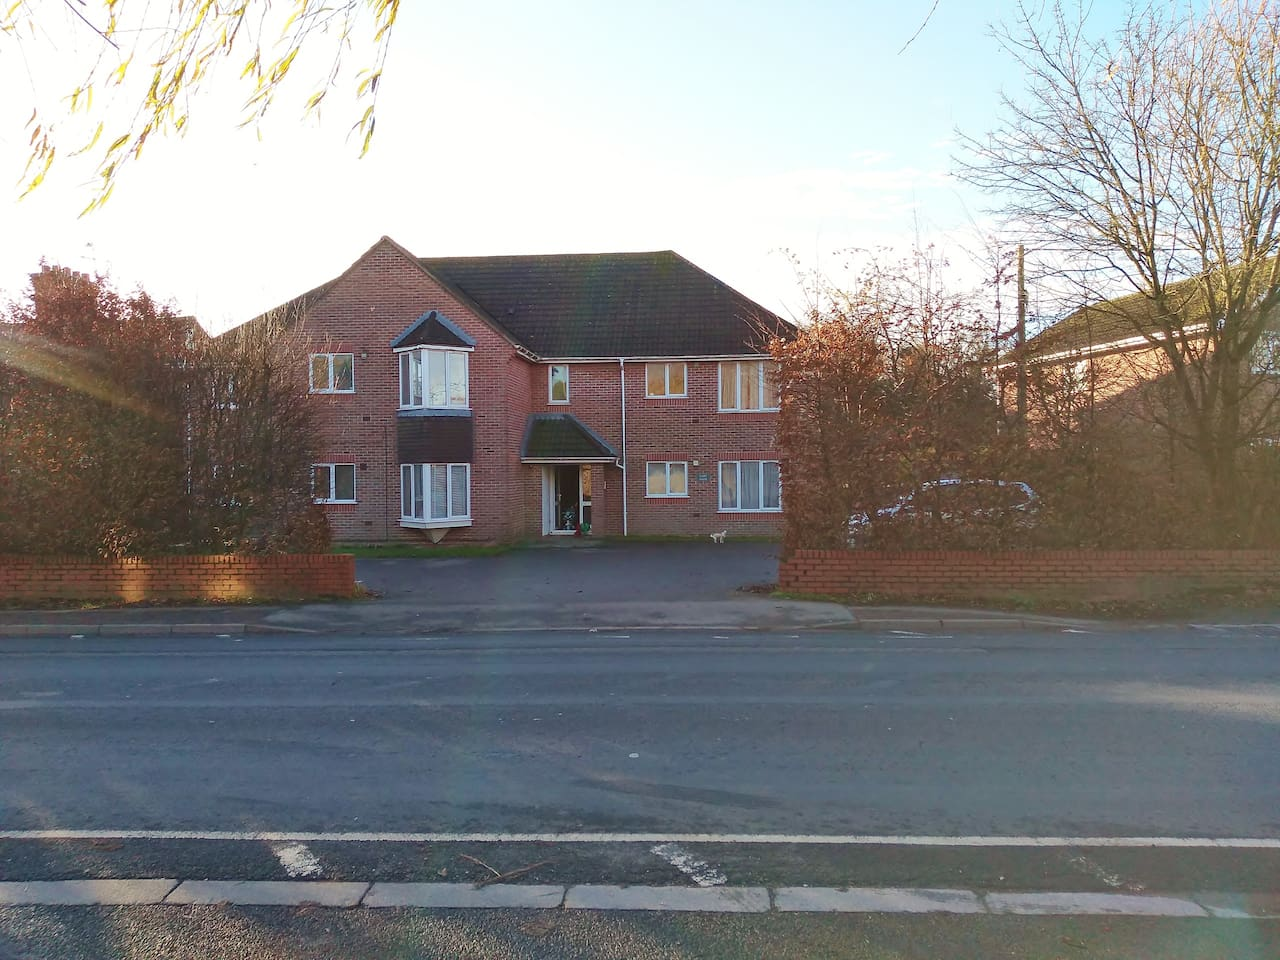 ground floor flat with off road parking.